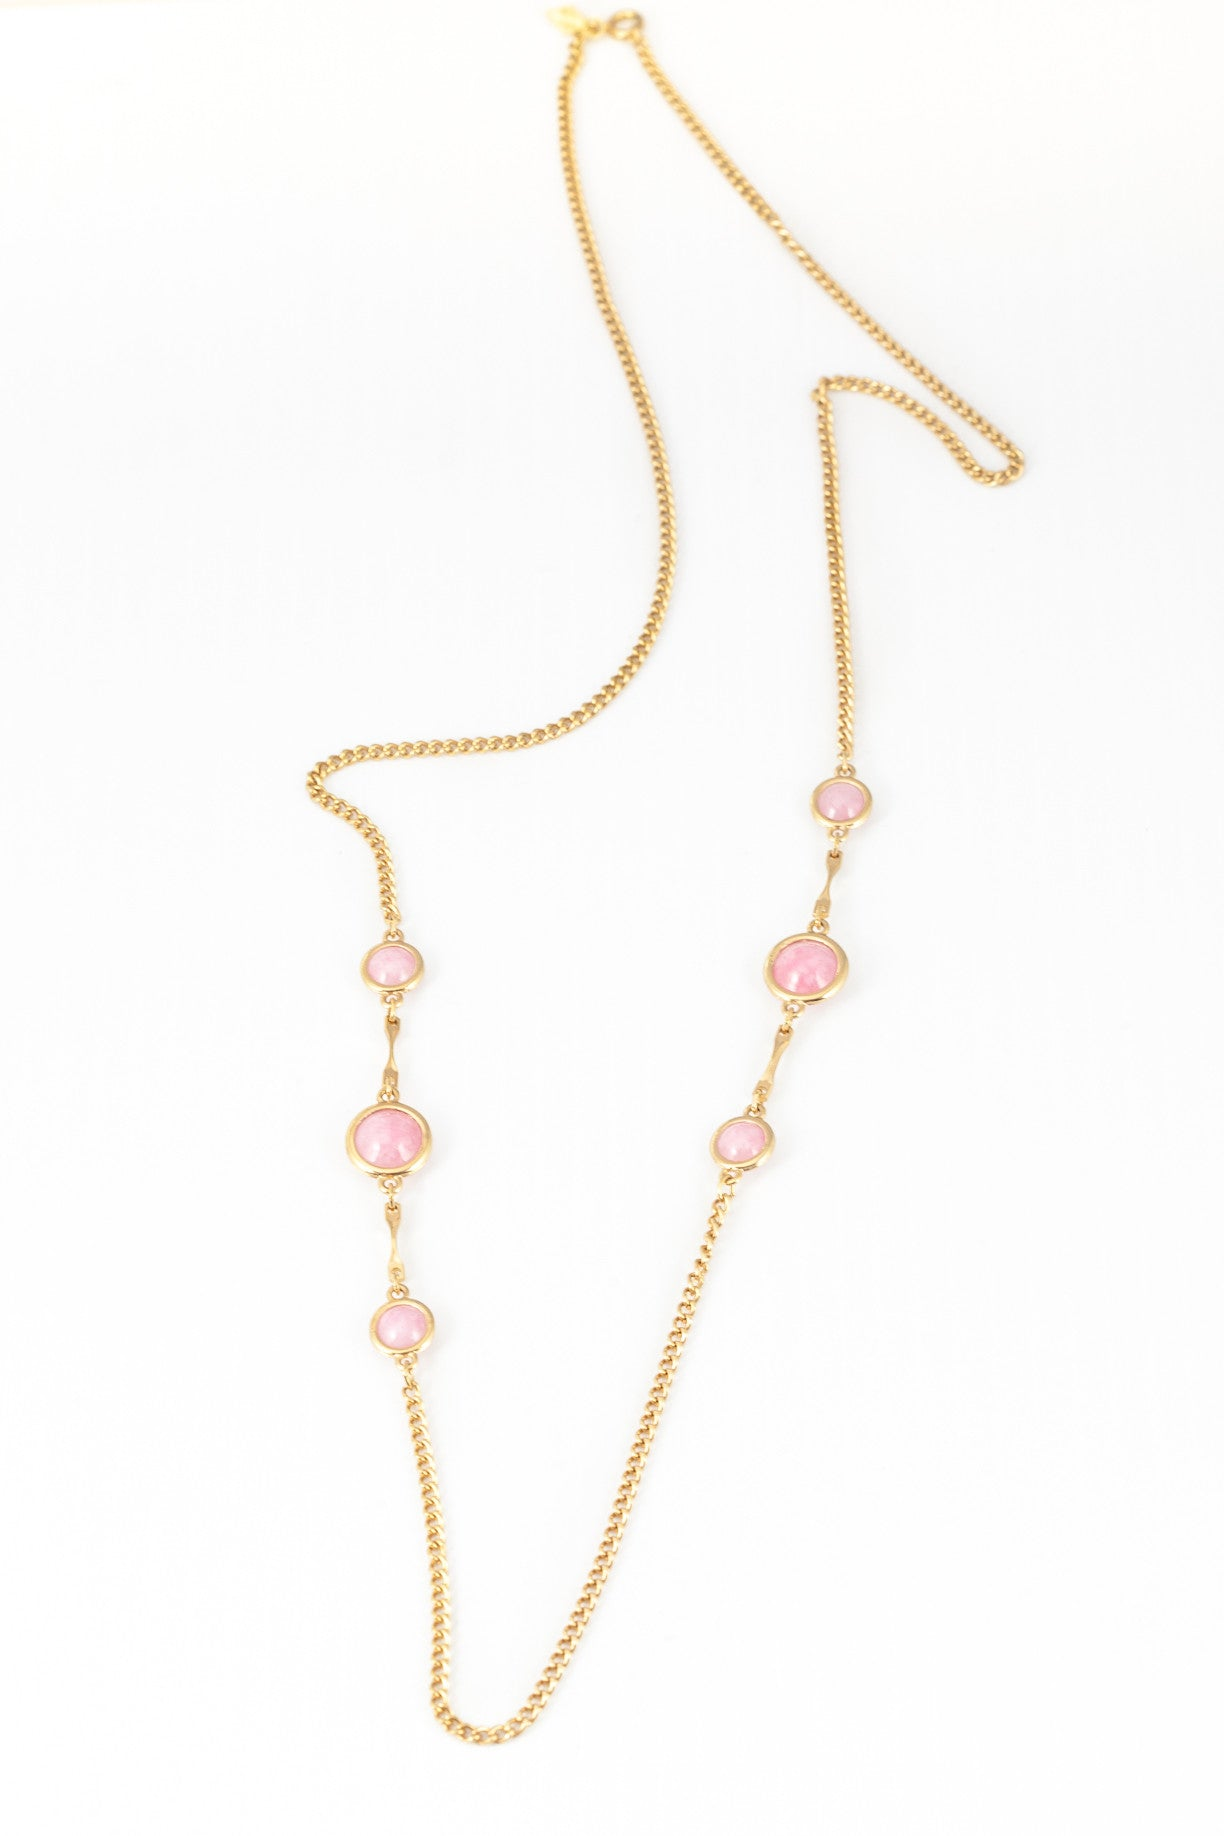 70's__Sarah Coventry__Muted Pink Disc Necklace